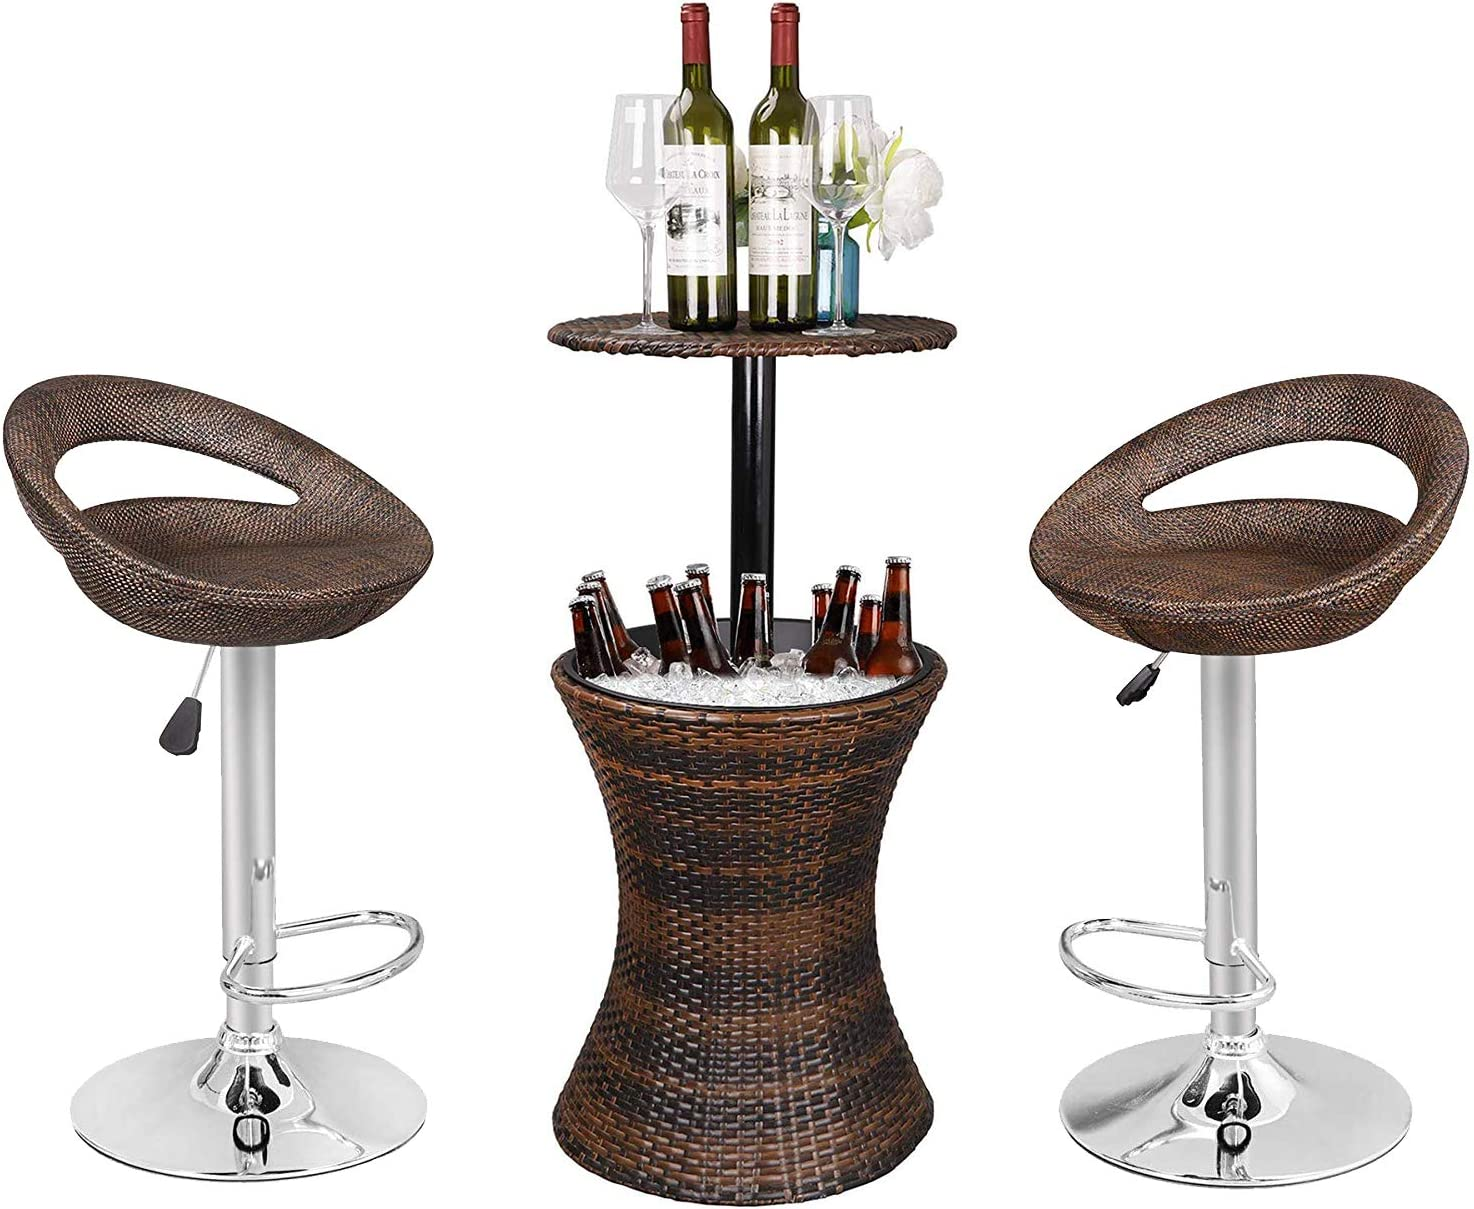 ZENSTYLE Rattan Style Height Adjustable Cool Bar Outdoor Patio Table with Ice Bucket + Swivel Barstool Brown Wicker 360° Swivel Patio Bar Stool for Indoor and Outdoor